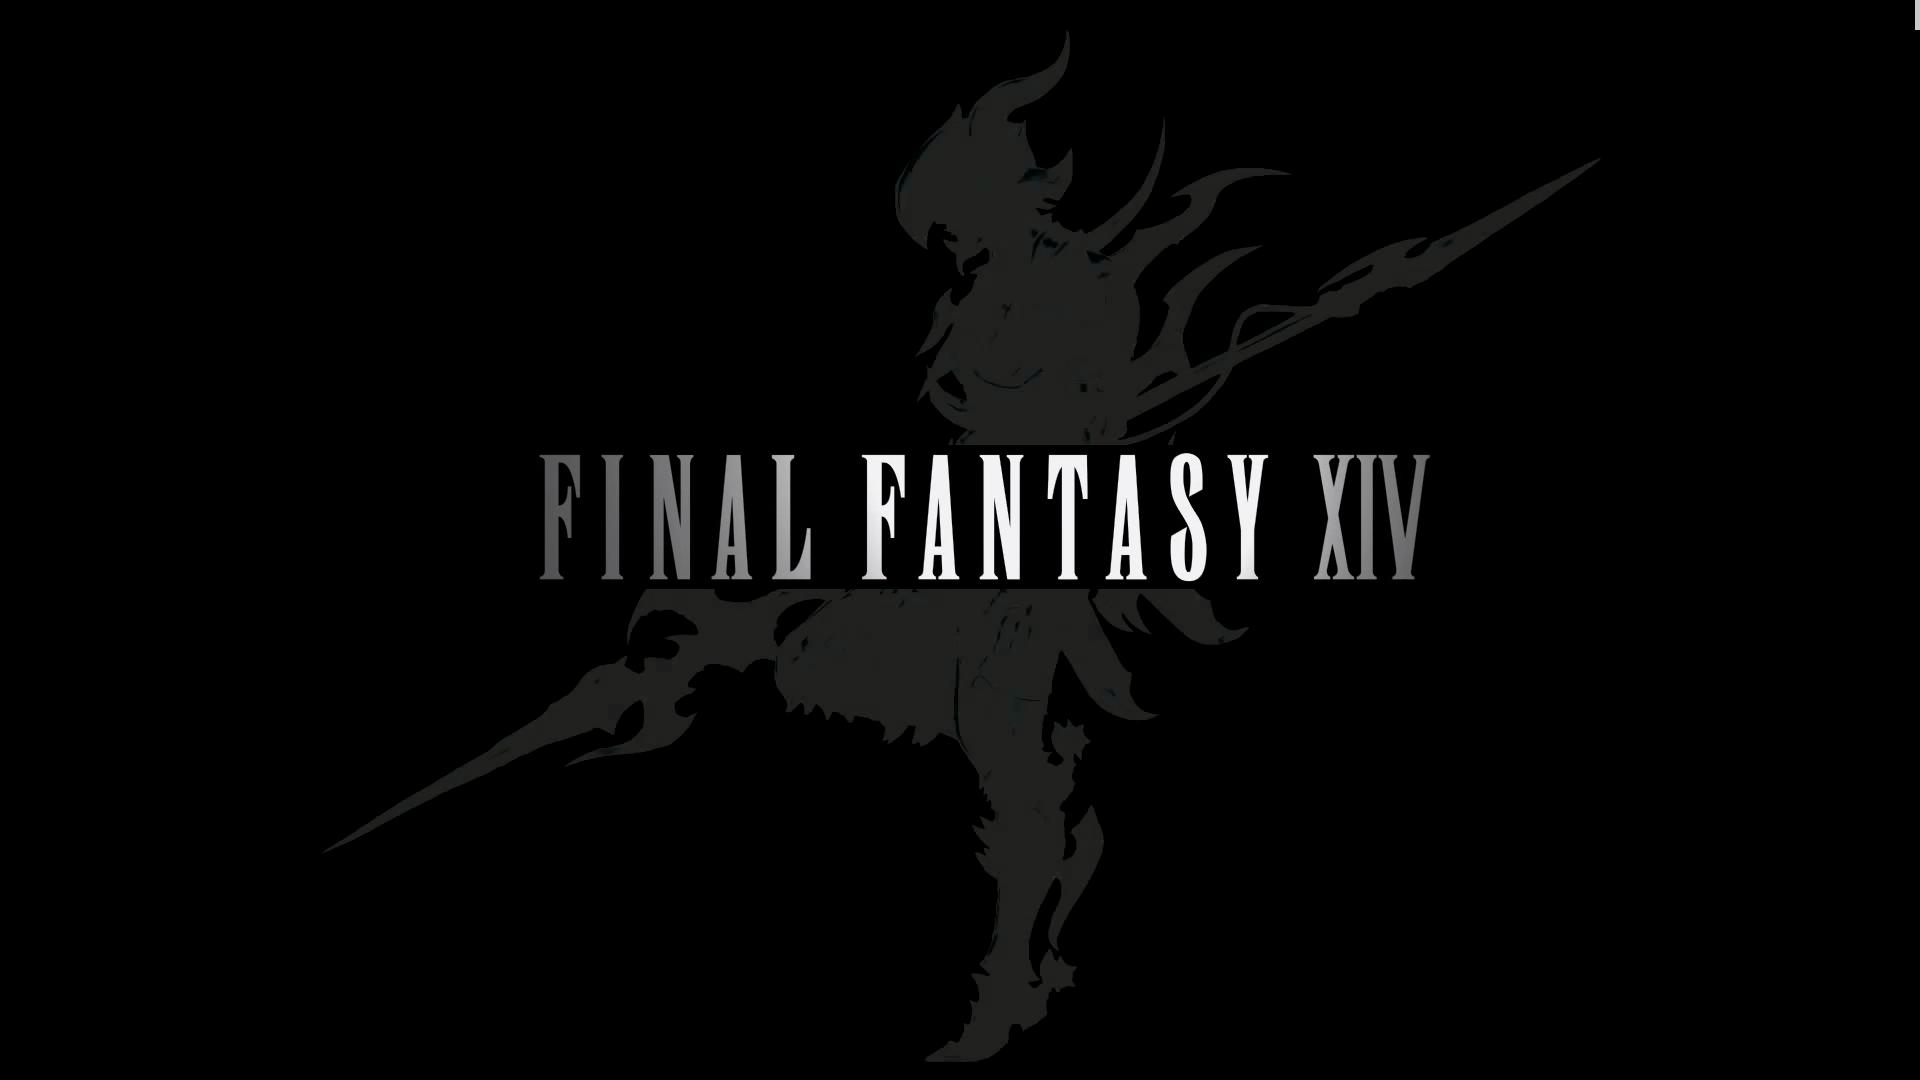 Final Fantasy Wallpaper Iphone X Final Fantasy Xiv Full Hd Wallpaper And Background Image